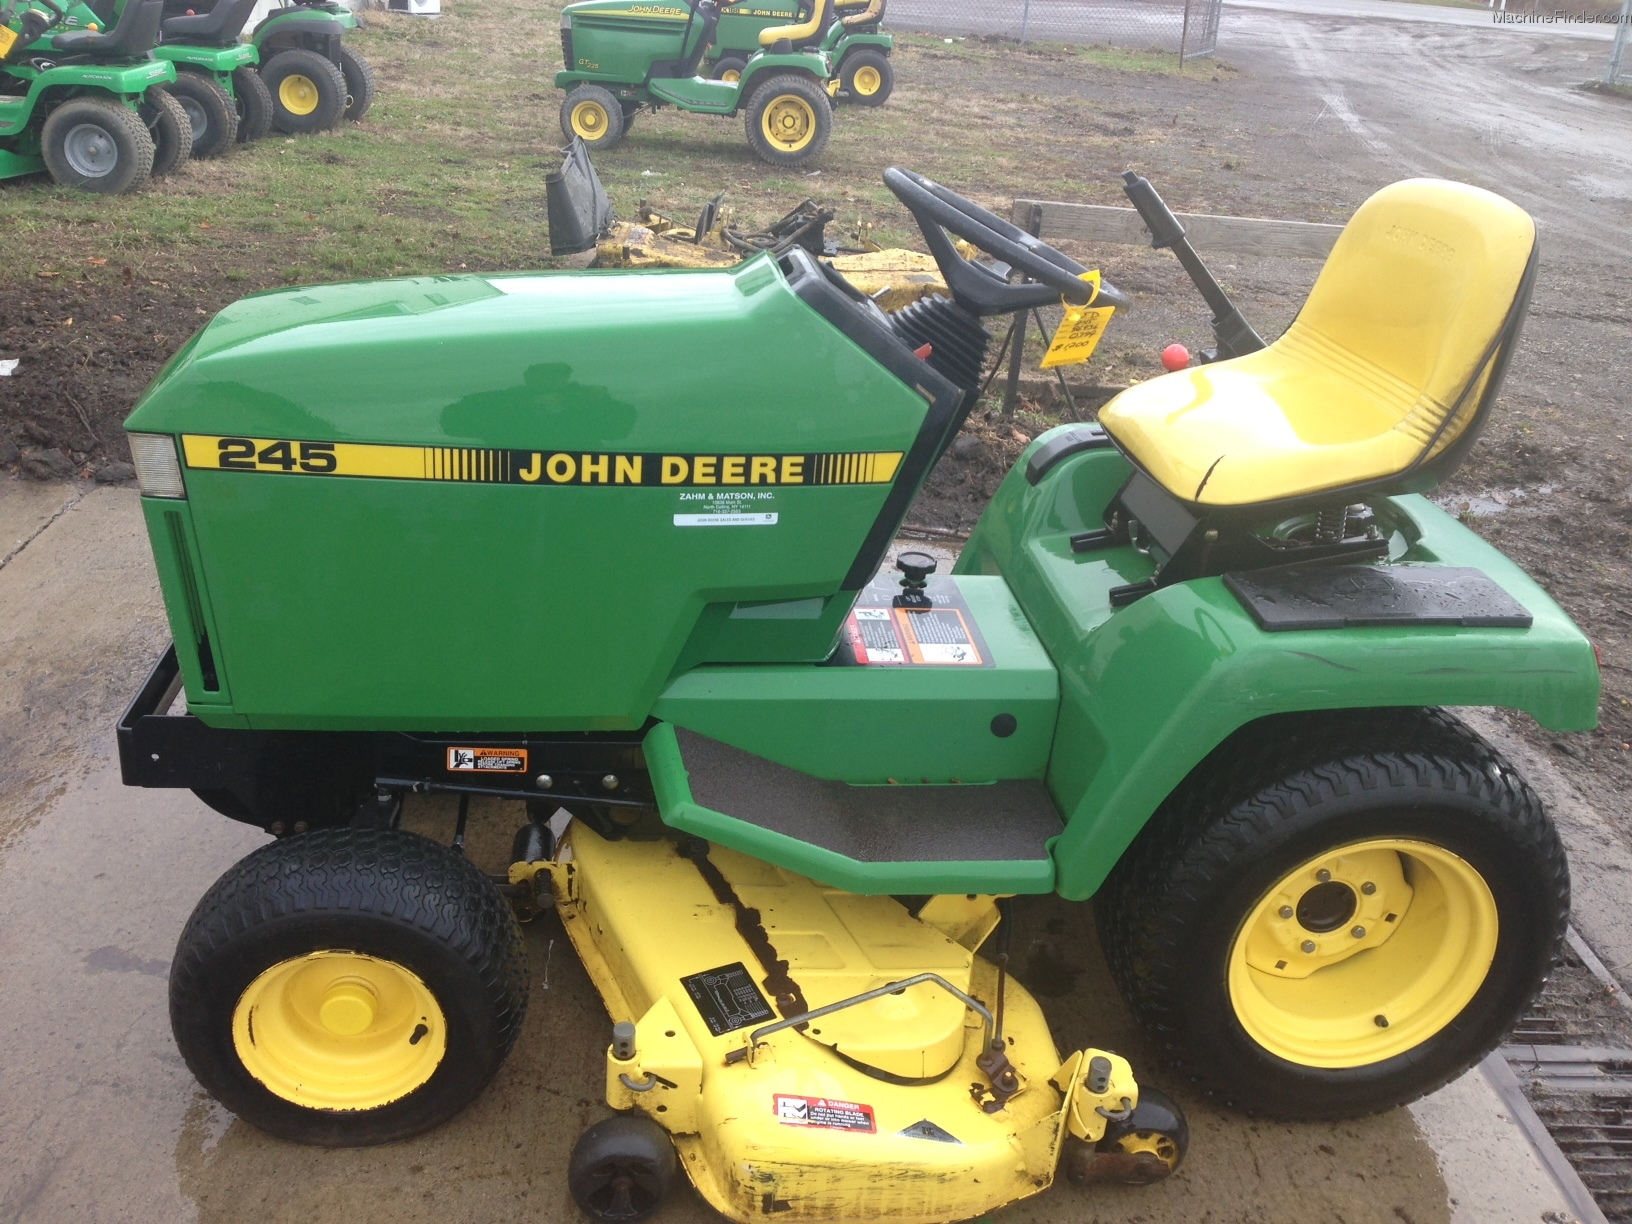 John Deere 245 Deck Parts Www Wiring Diagram 1993 Lawn Garden And Commercial Mowing